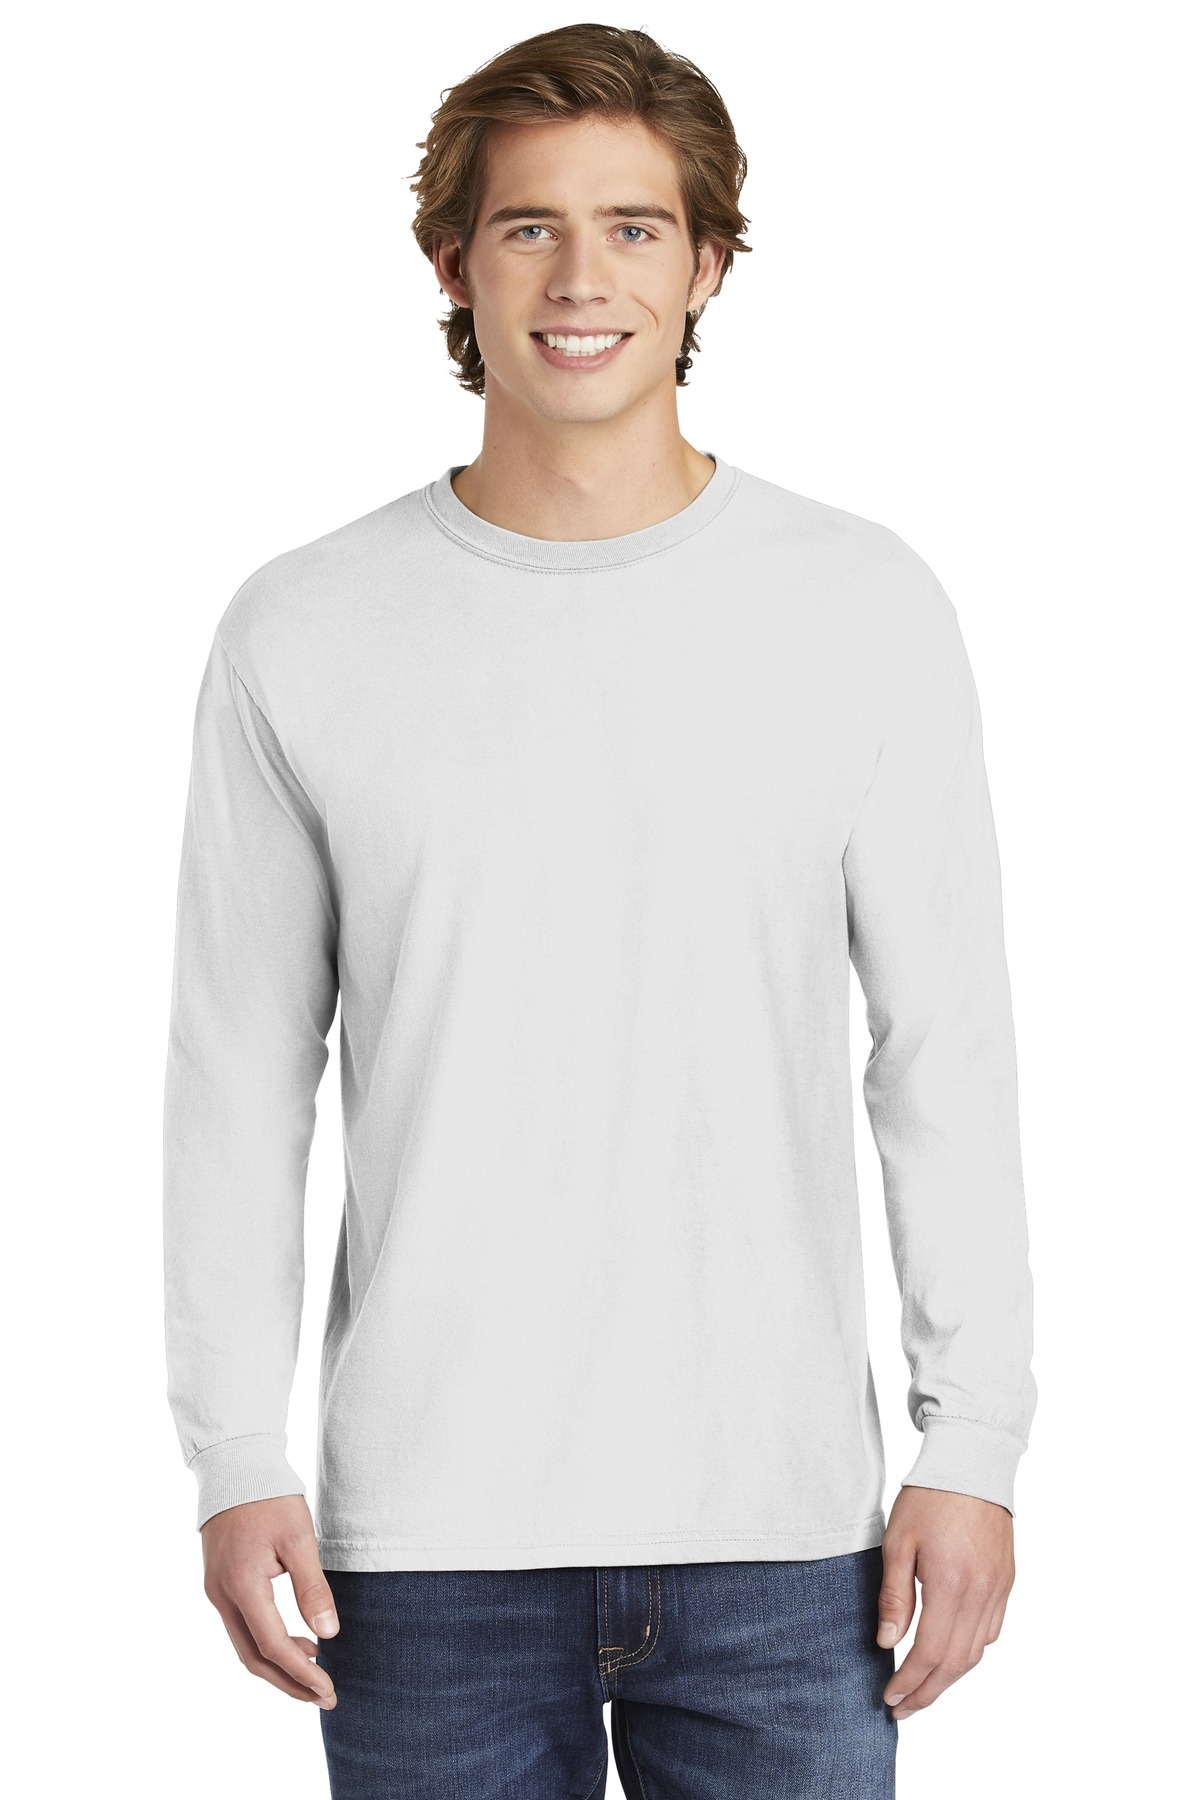 COMFORT COLORS  ®  Heavyweight Ring Spun Long Sleeve Tee. 6014 - White